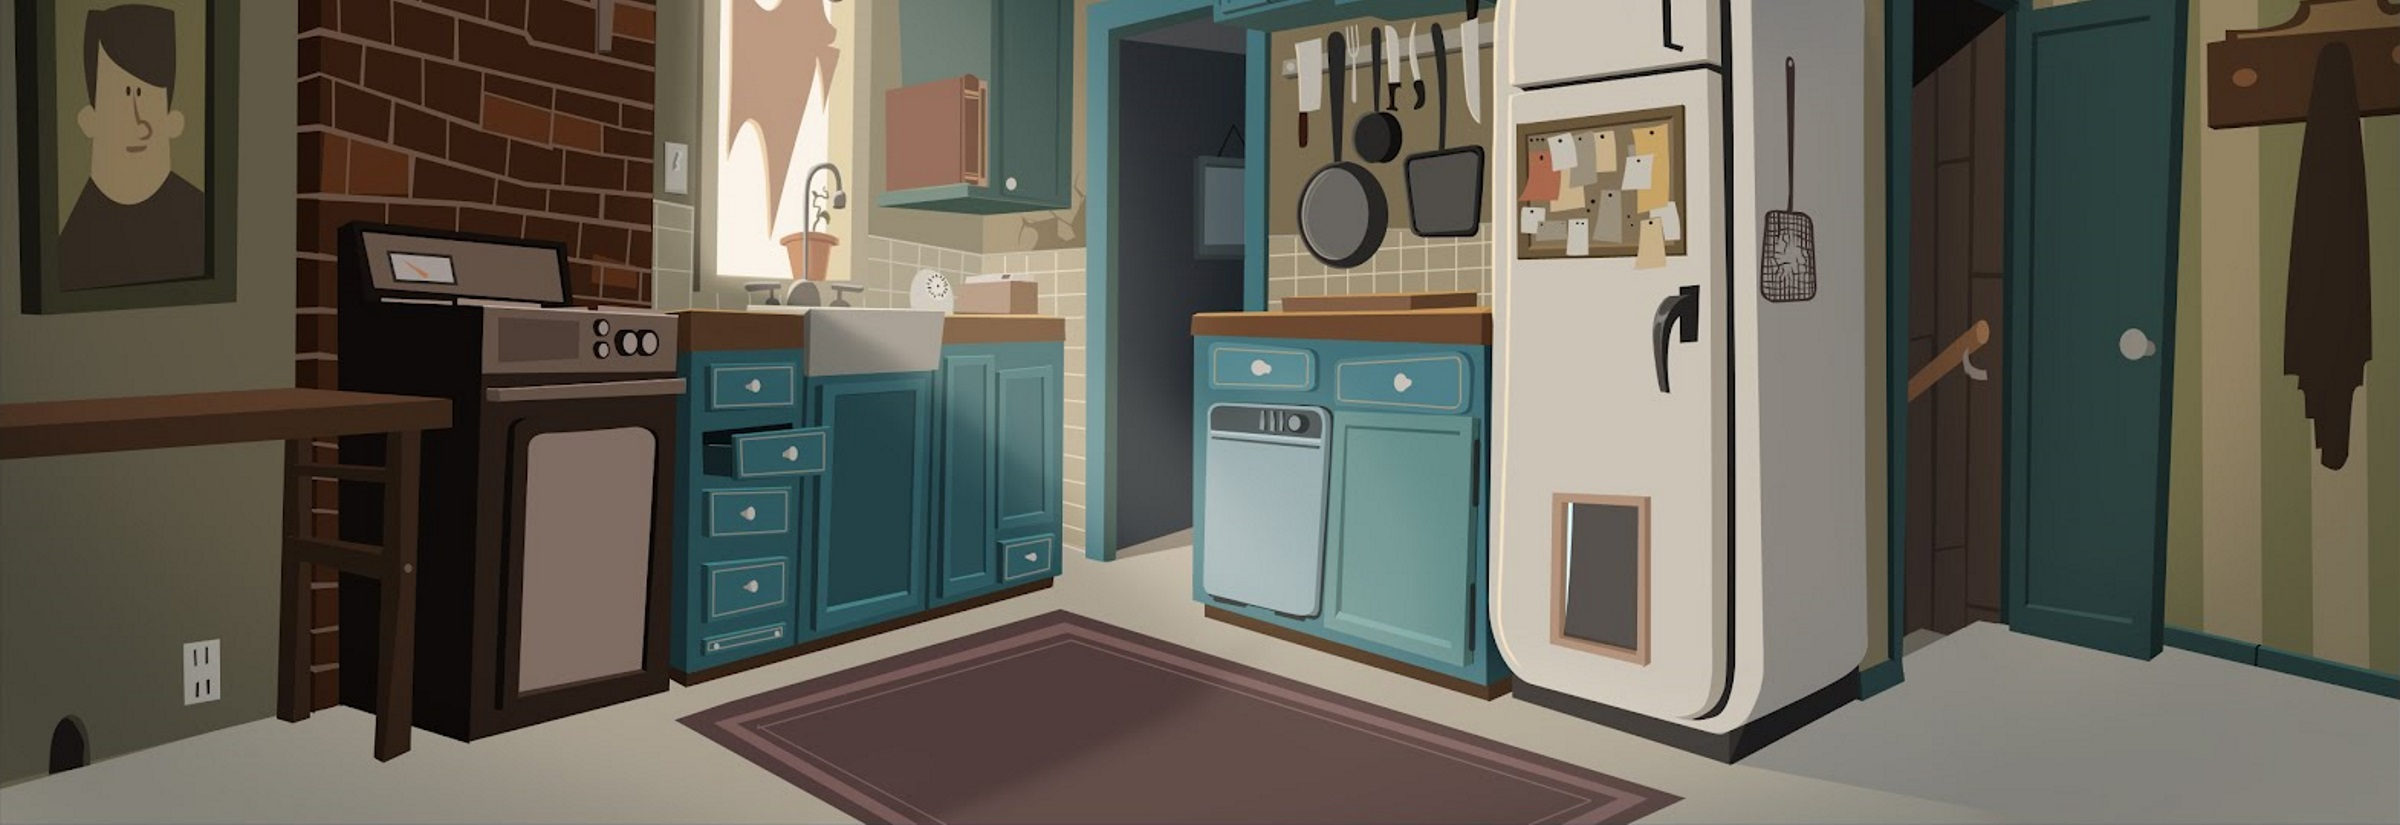 XL Background - Kitchen 02.jpg